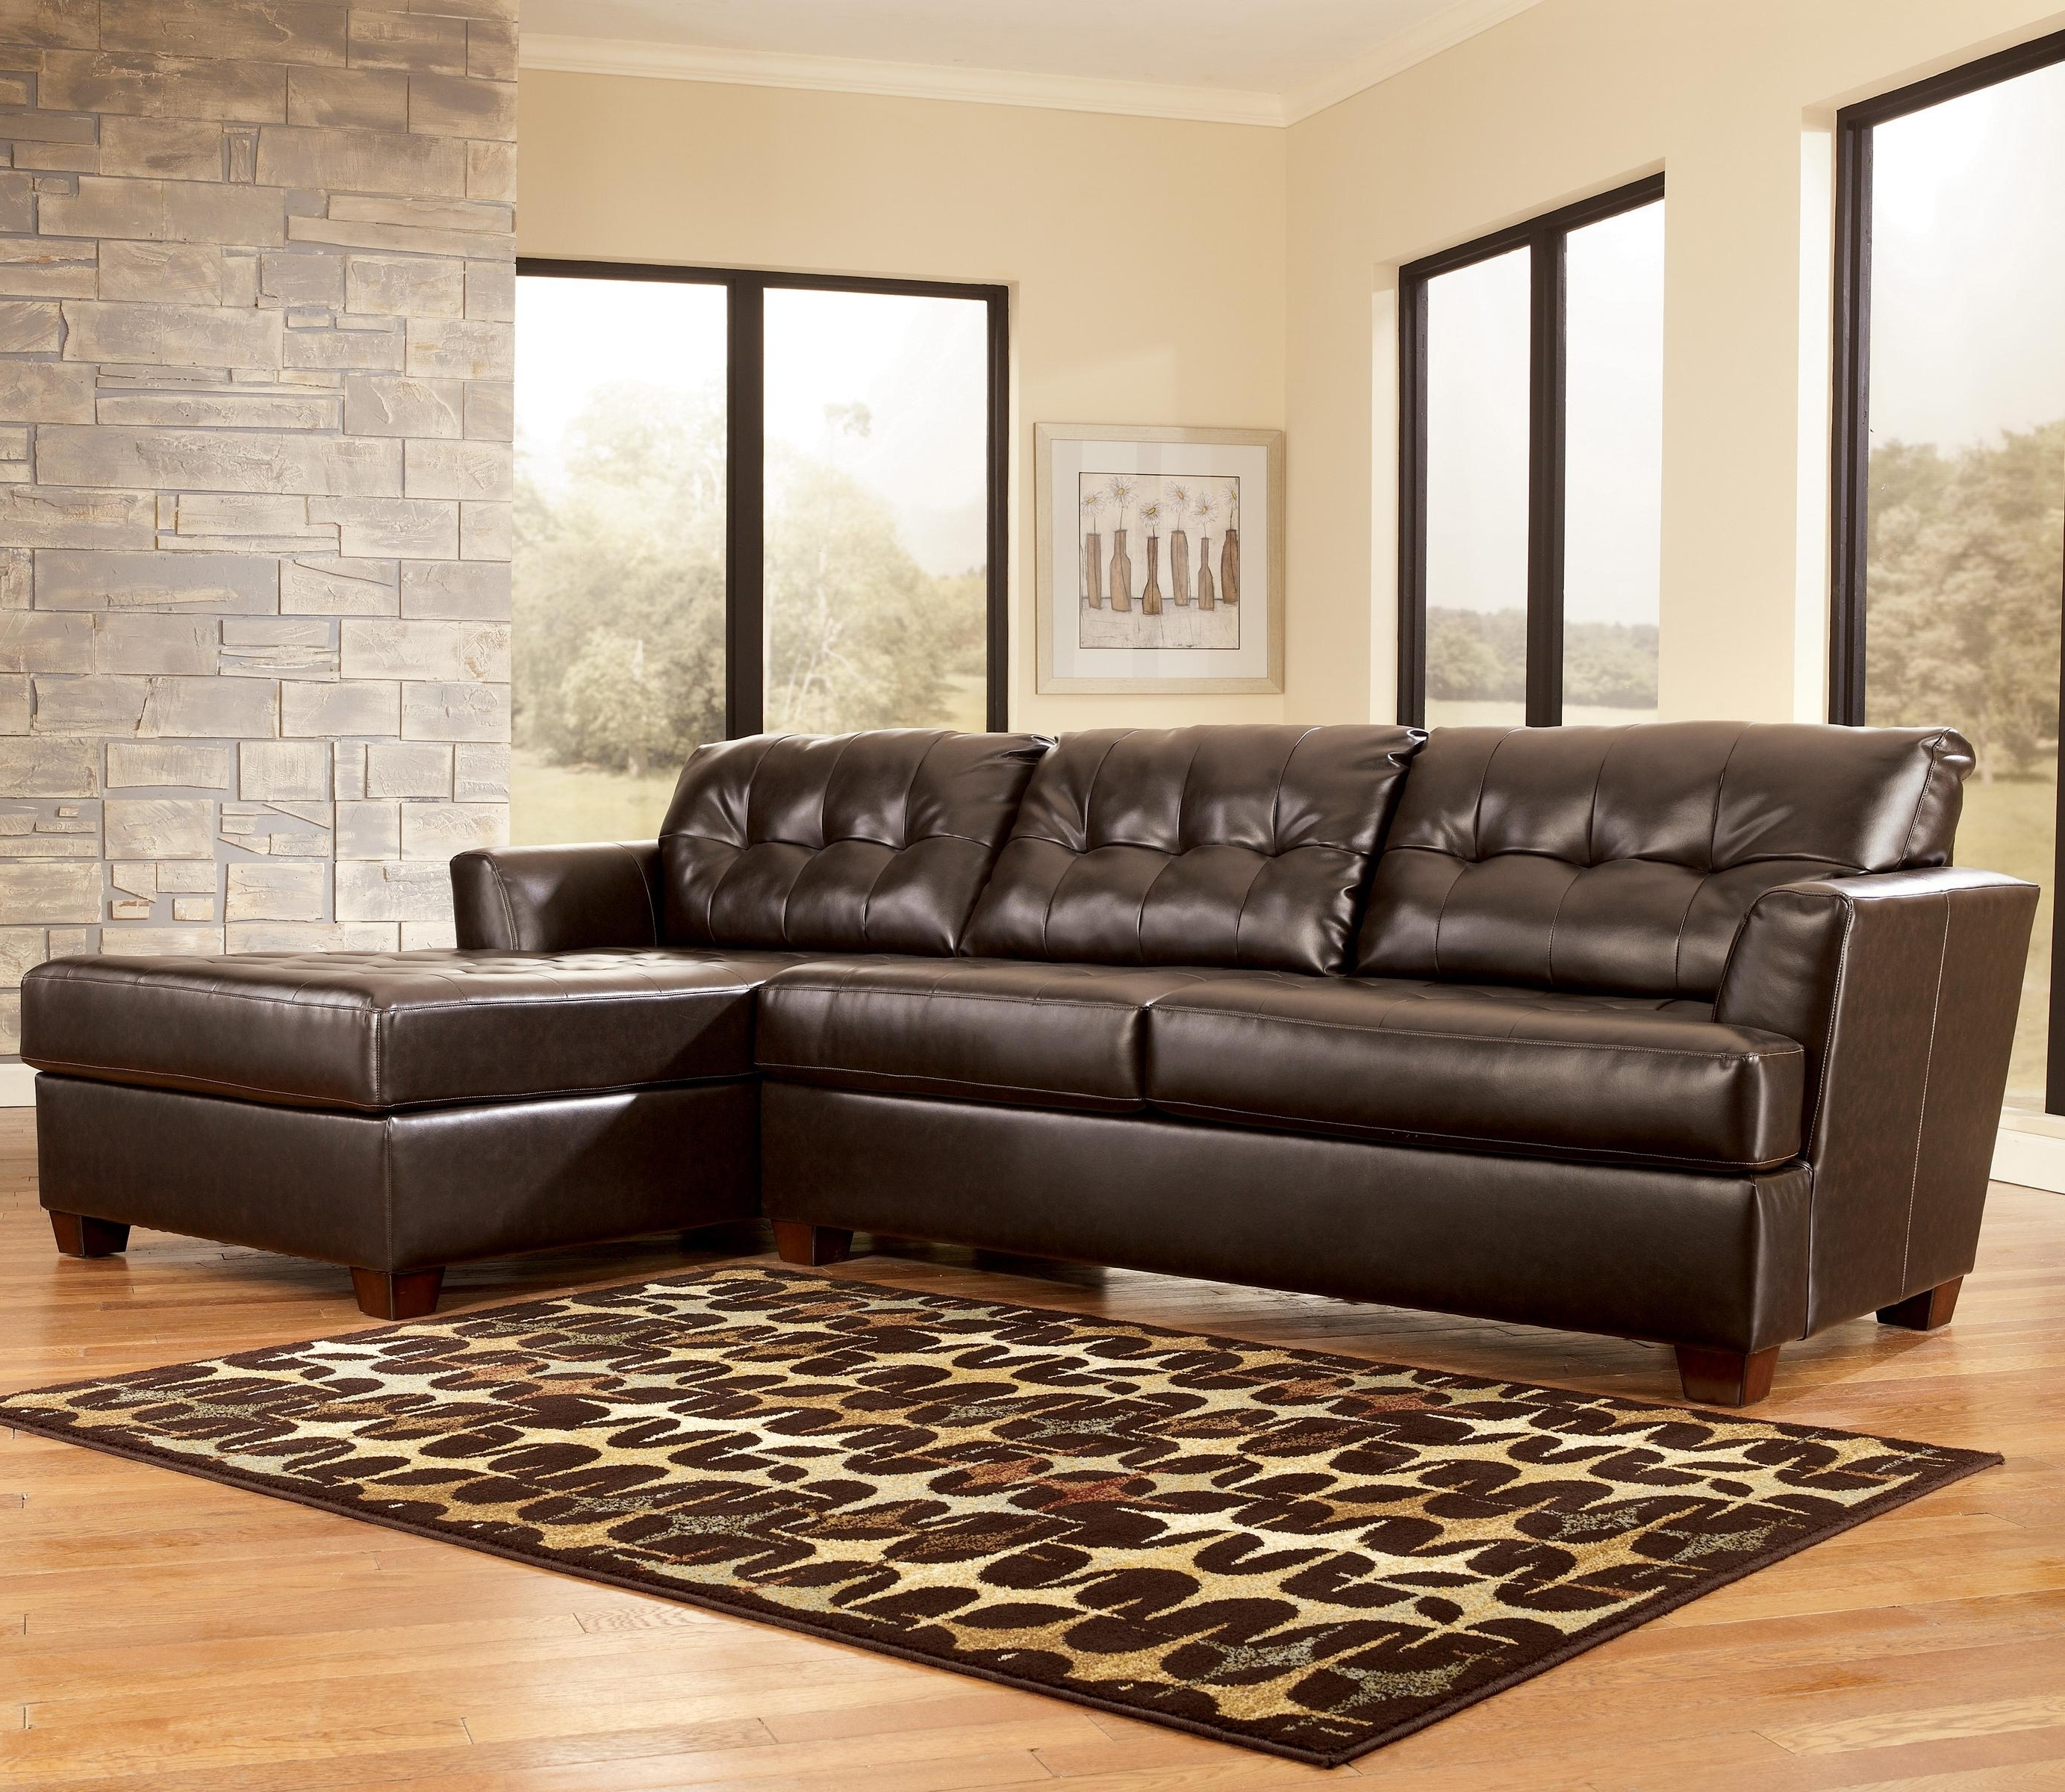 2017 Dixon Durablend – Chocolate Sectional Sofasignature Design With Regard To Knoxville Tn Sectional Sofas (View 1 of 15)